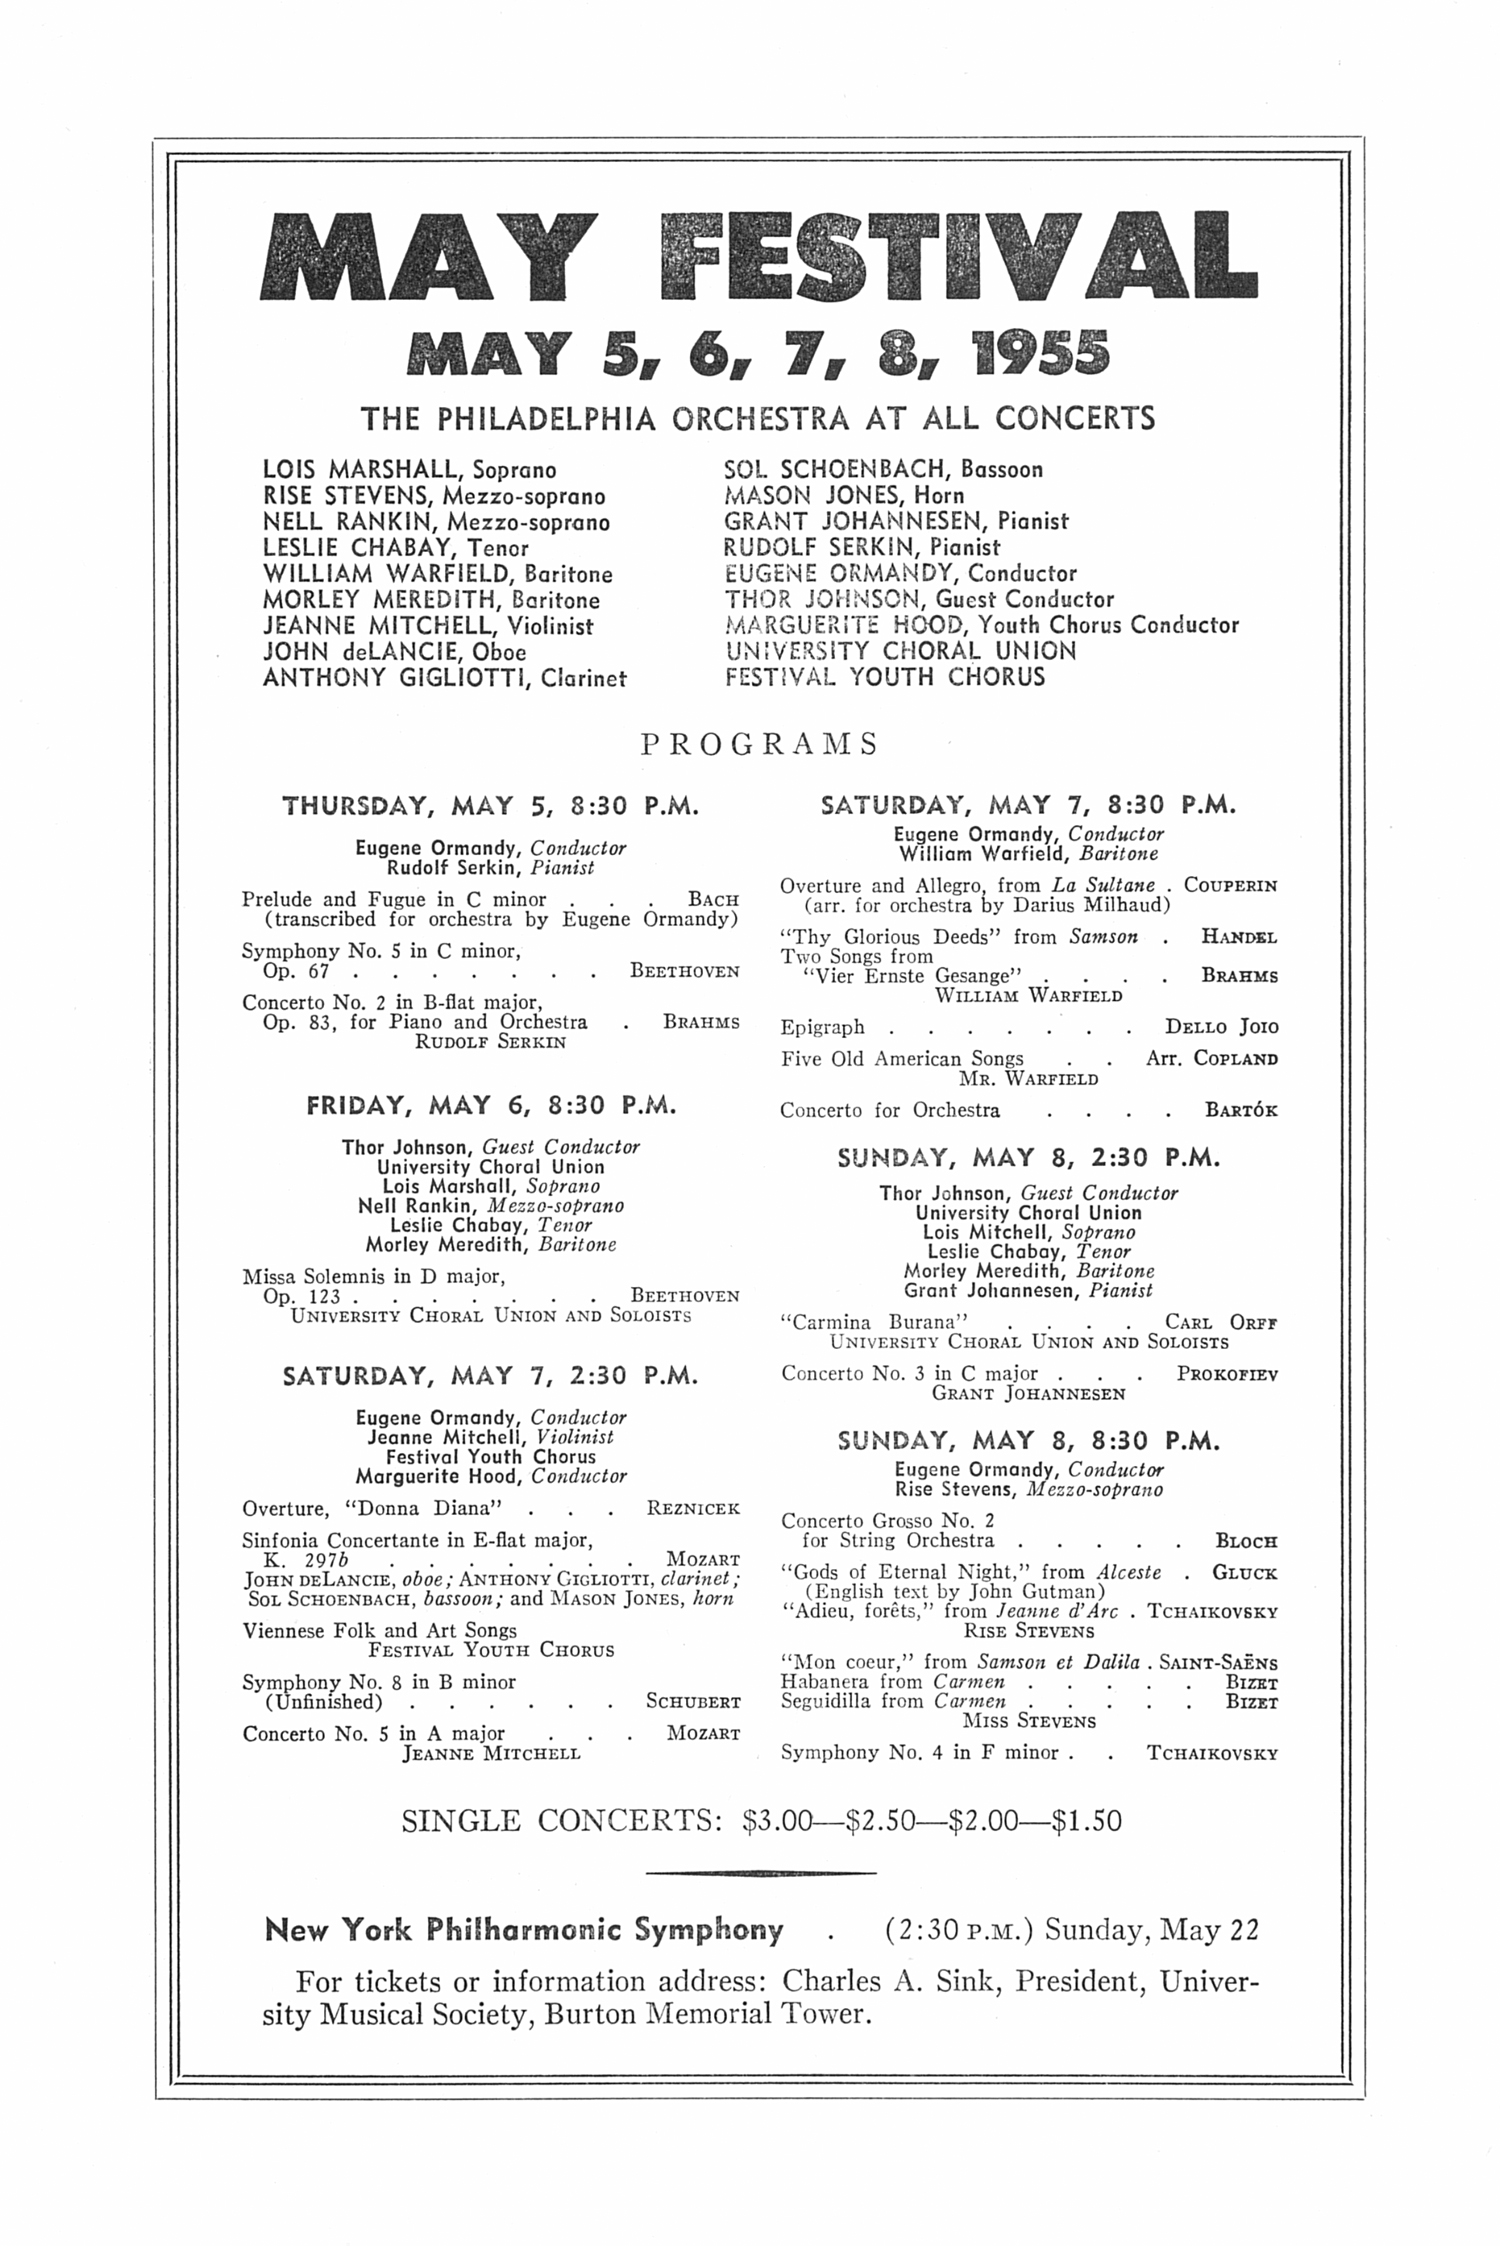 UMS Concert Program, March 22,1955: Ninth Annual Extra Concert Series -- Walter Gieseking image